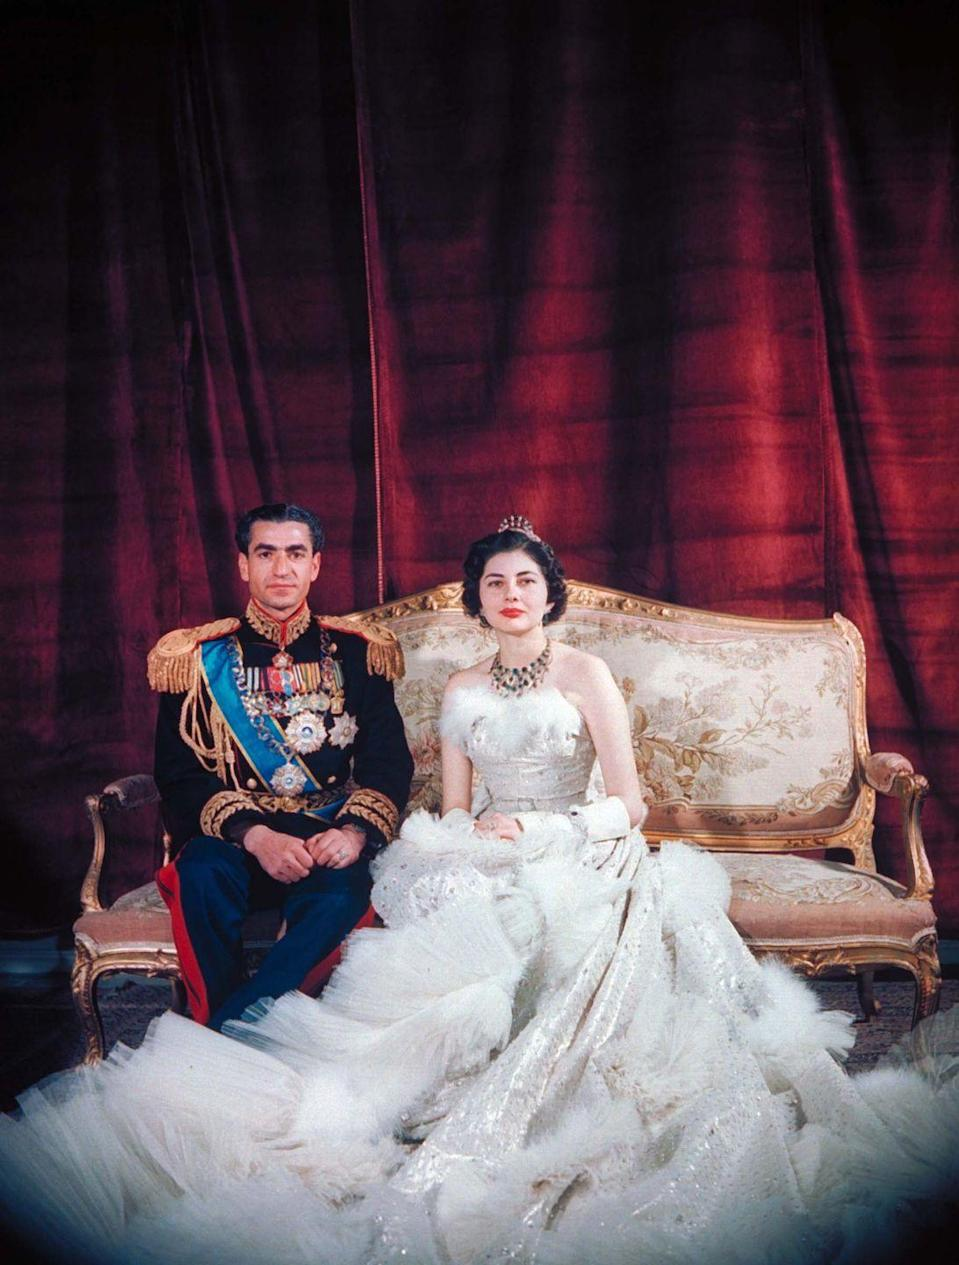 <p>Queen Soraya wore an elaborate feather, tulle, and crystal-embroidered ball gown designed by Christian Dior for her wedding to the Iranian monarch. The couple married in a traditional ceremony when Soraya was just 16 years old. The Shah repudiated her after seven years of marriage, when she was unable to produce an heir for the throne. </p>